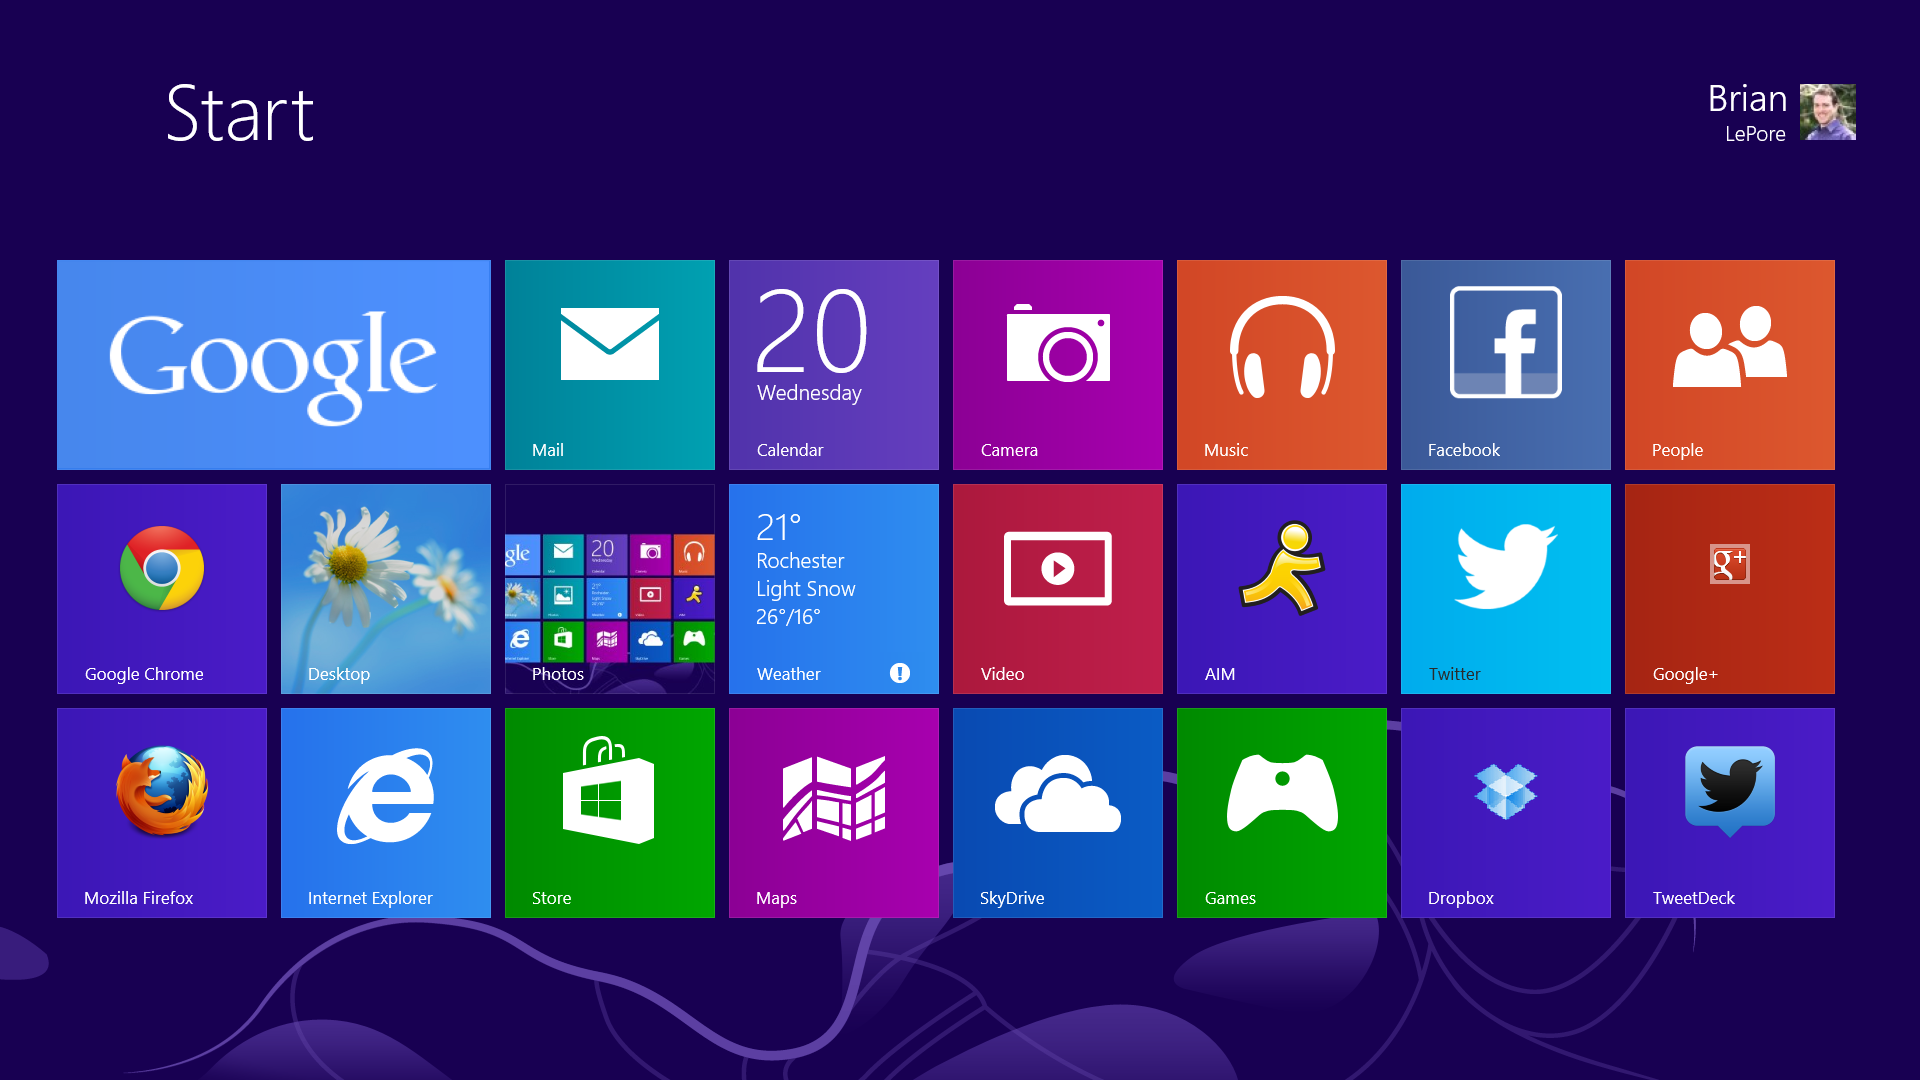 Live Wallpaper for Microsoft Surface